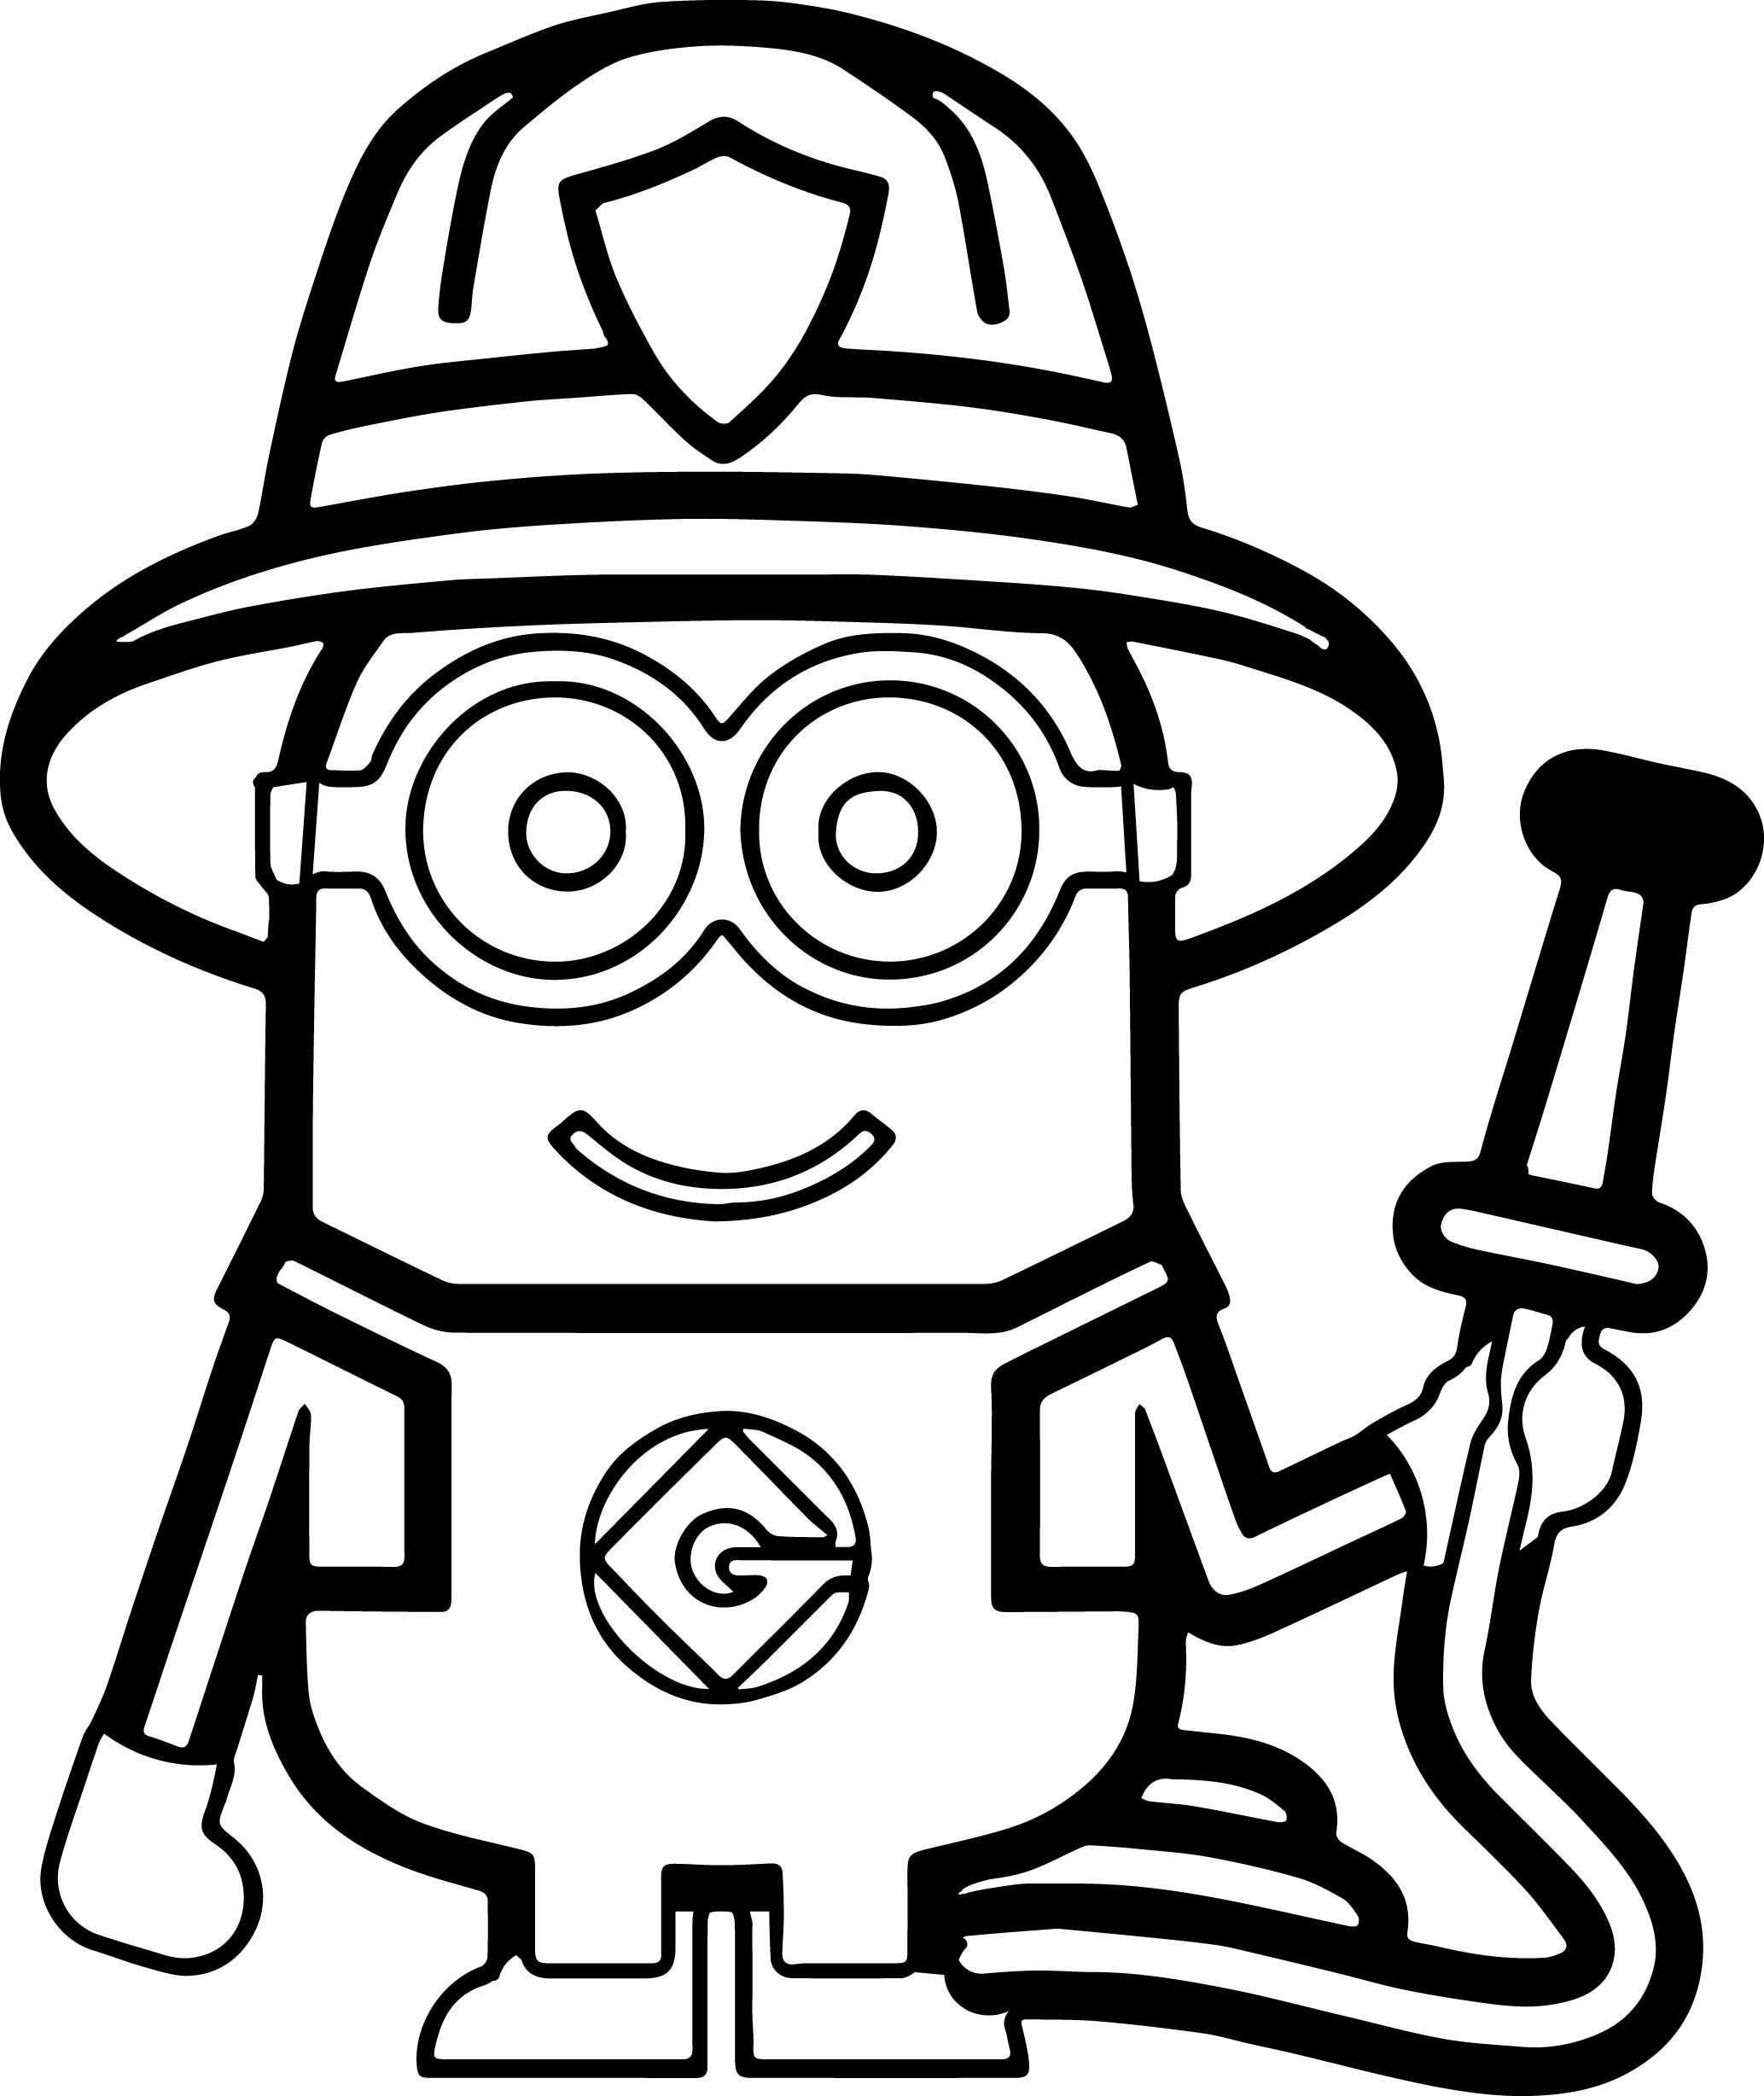 Minions Fireman Coloring Page | COLORING BOOK : ADULT COLORING PAGES ...